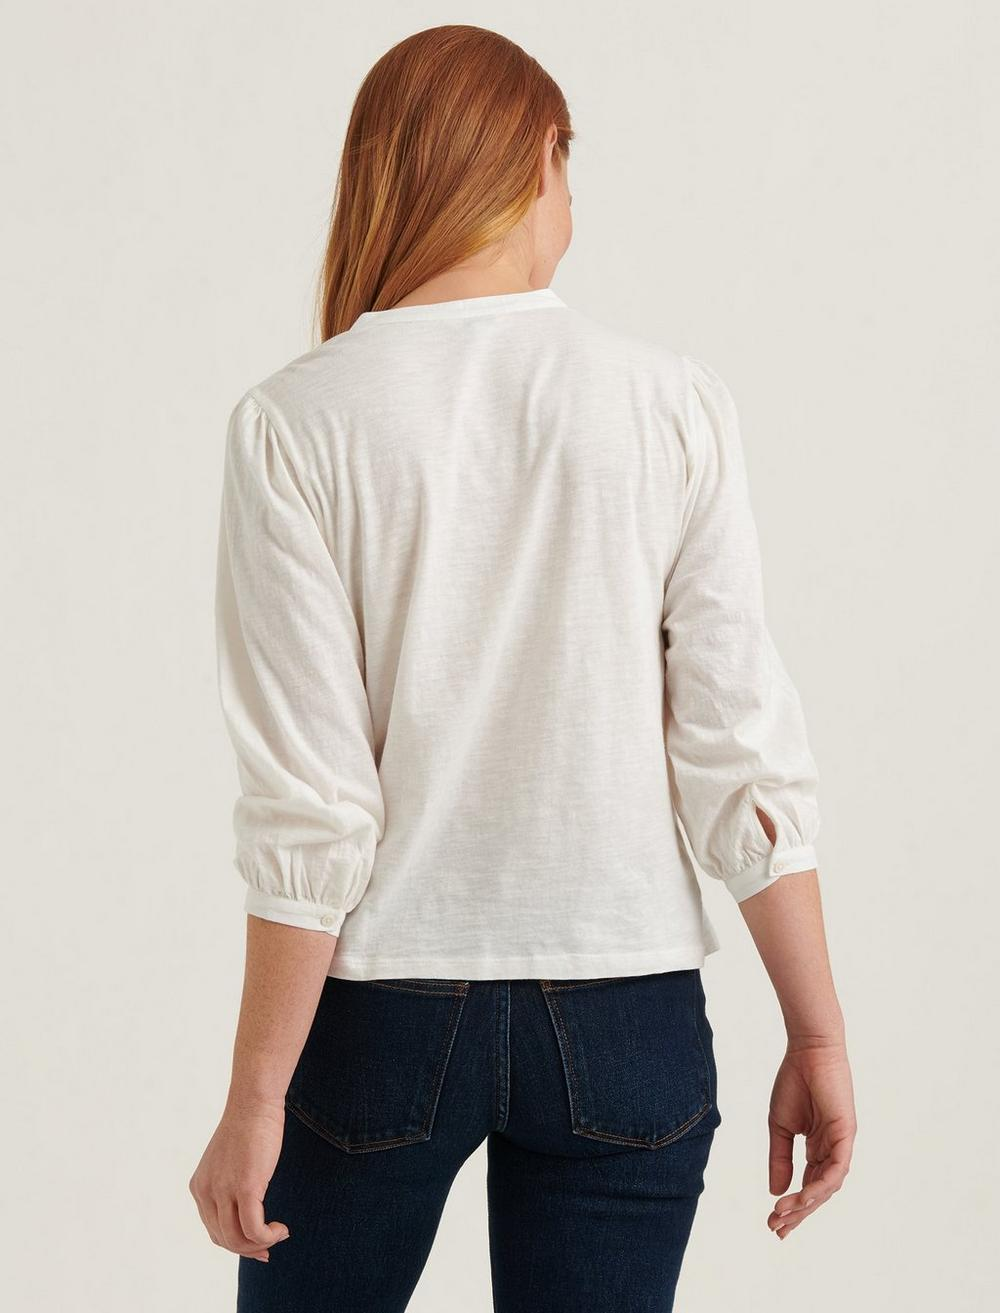 EMBROIDERED HENLEY TOP, image 4